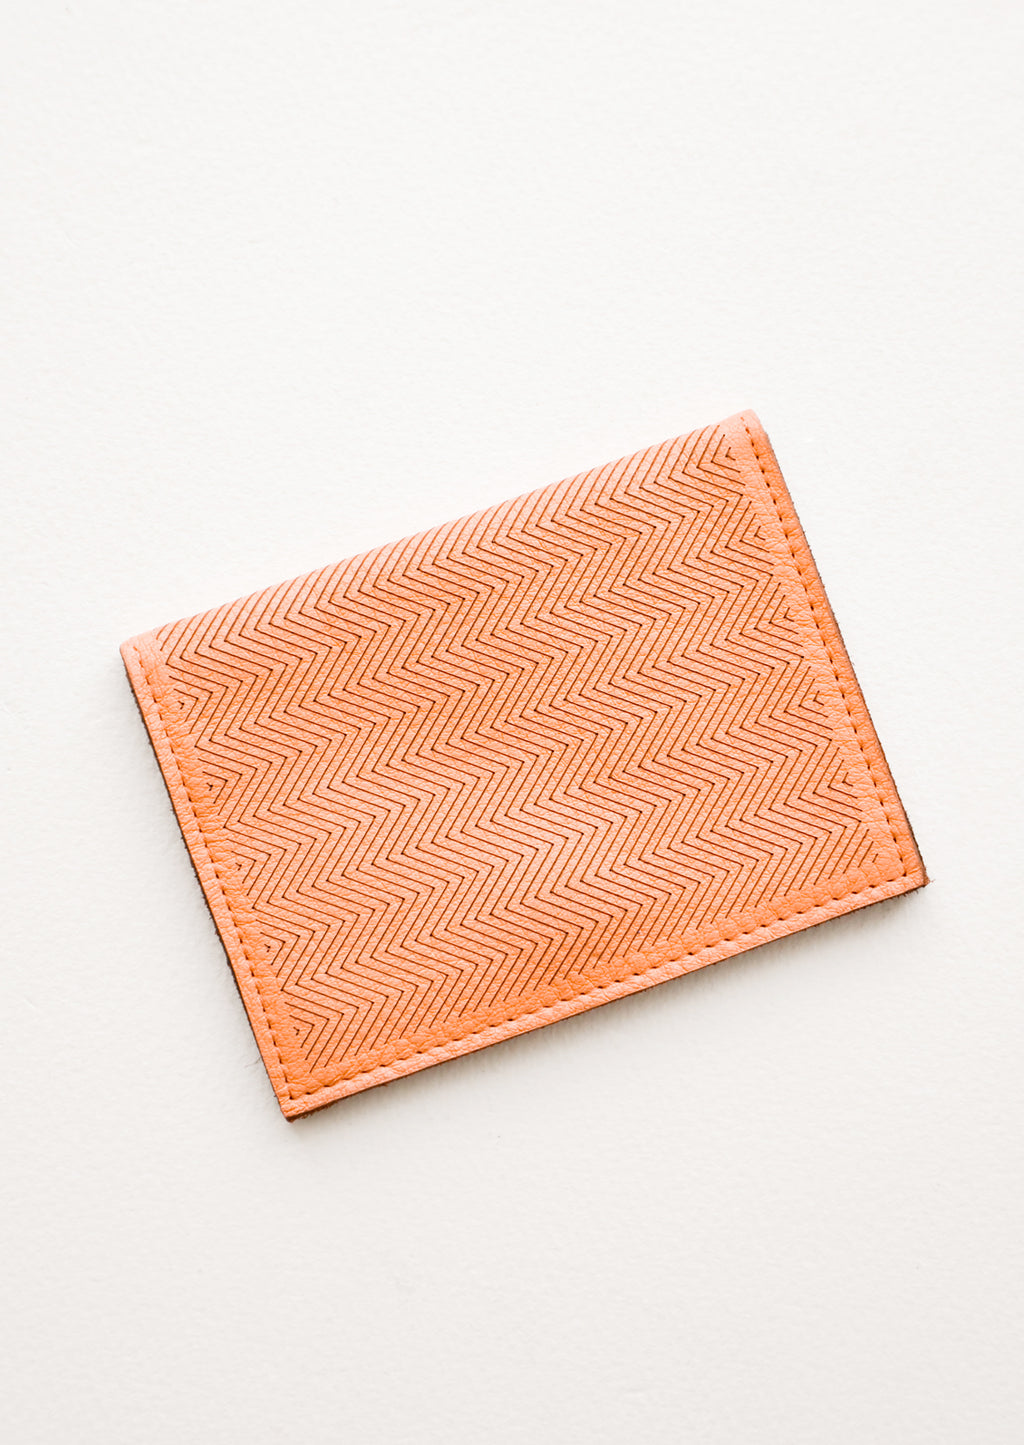 Terracotta: Slim terracotta orange leather wallet with two interior slip pockets that folds closed with a snap, shown closed with zig zag etched pattern.